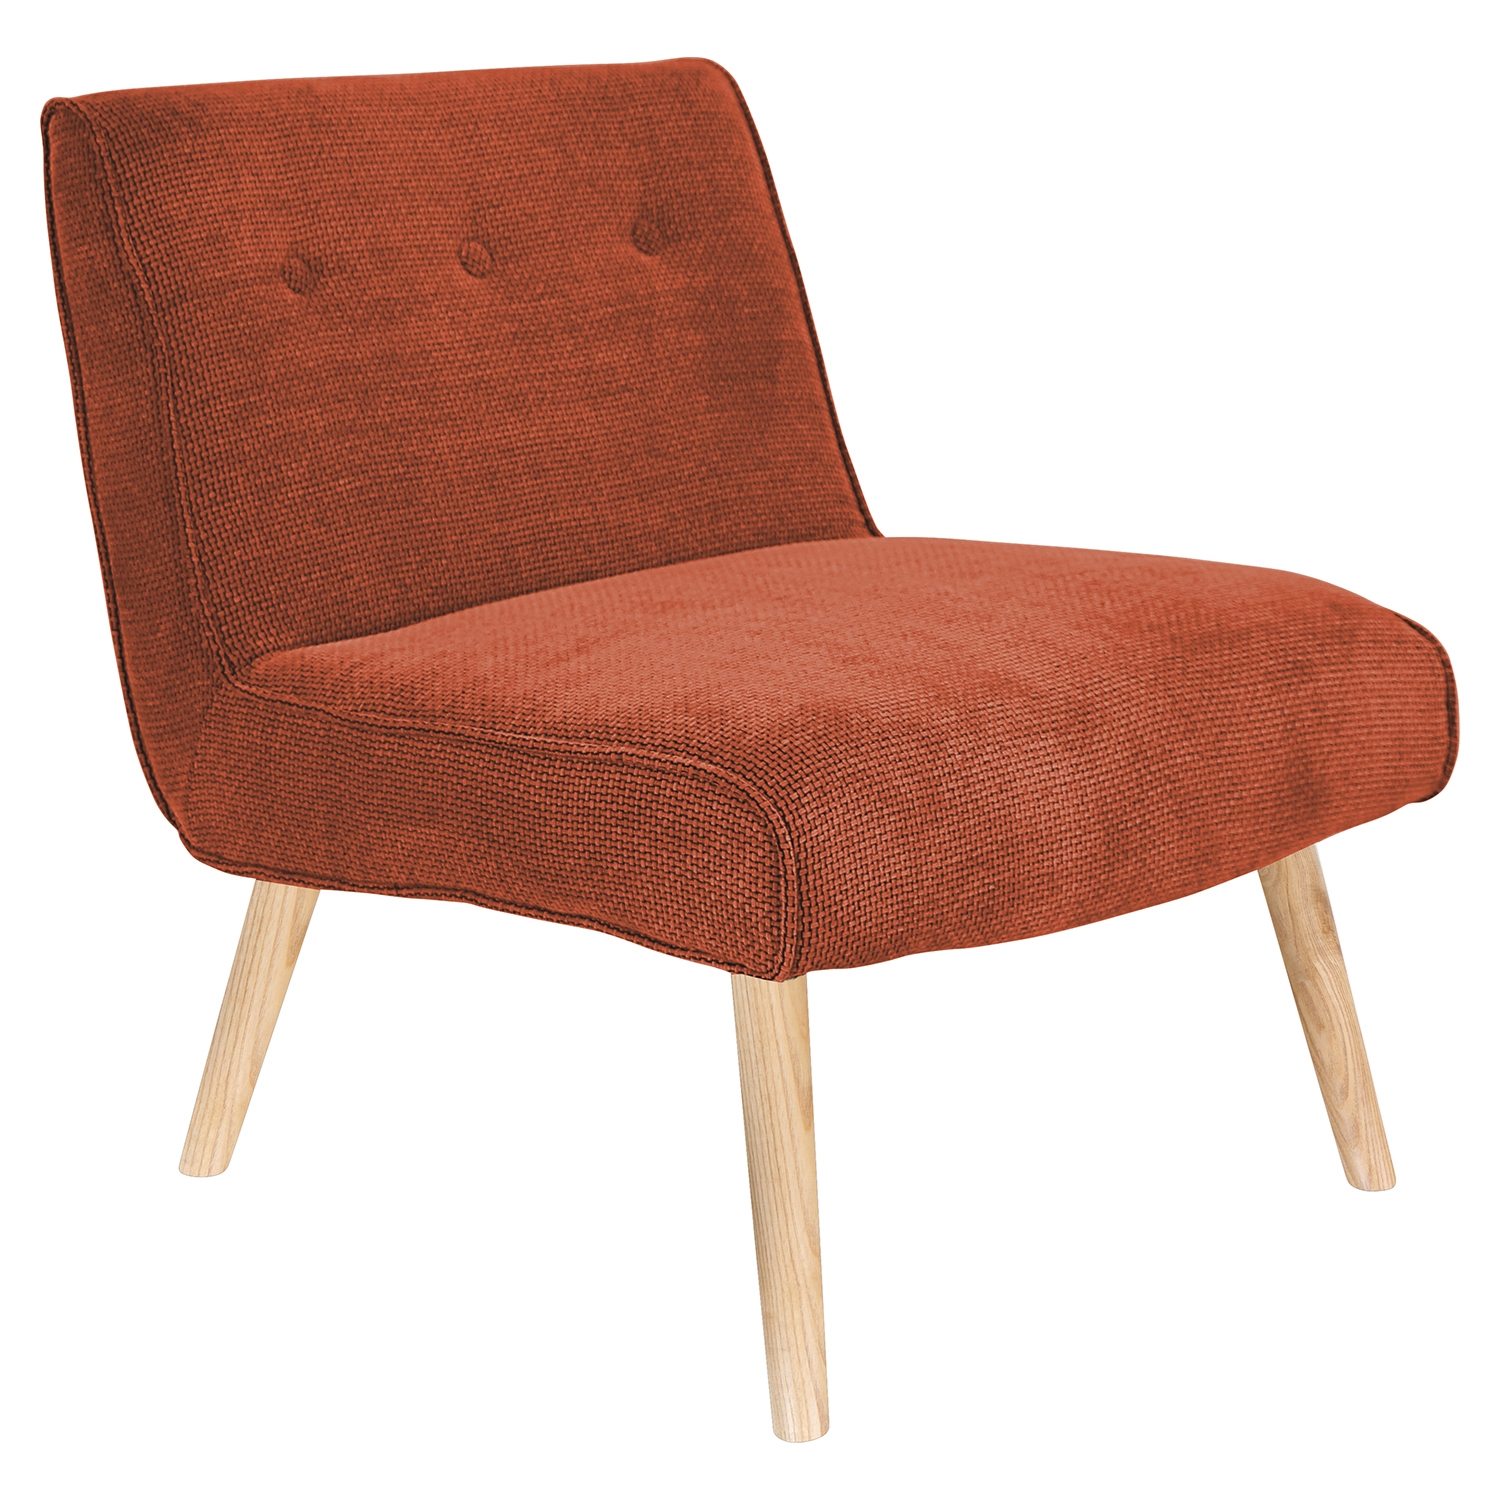 Vintage Neo Upholstery Accent Chair - Orange - LMS-CHR-AH-VNEO-O